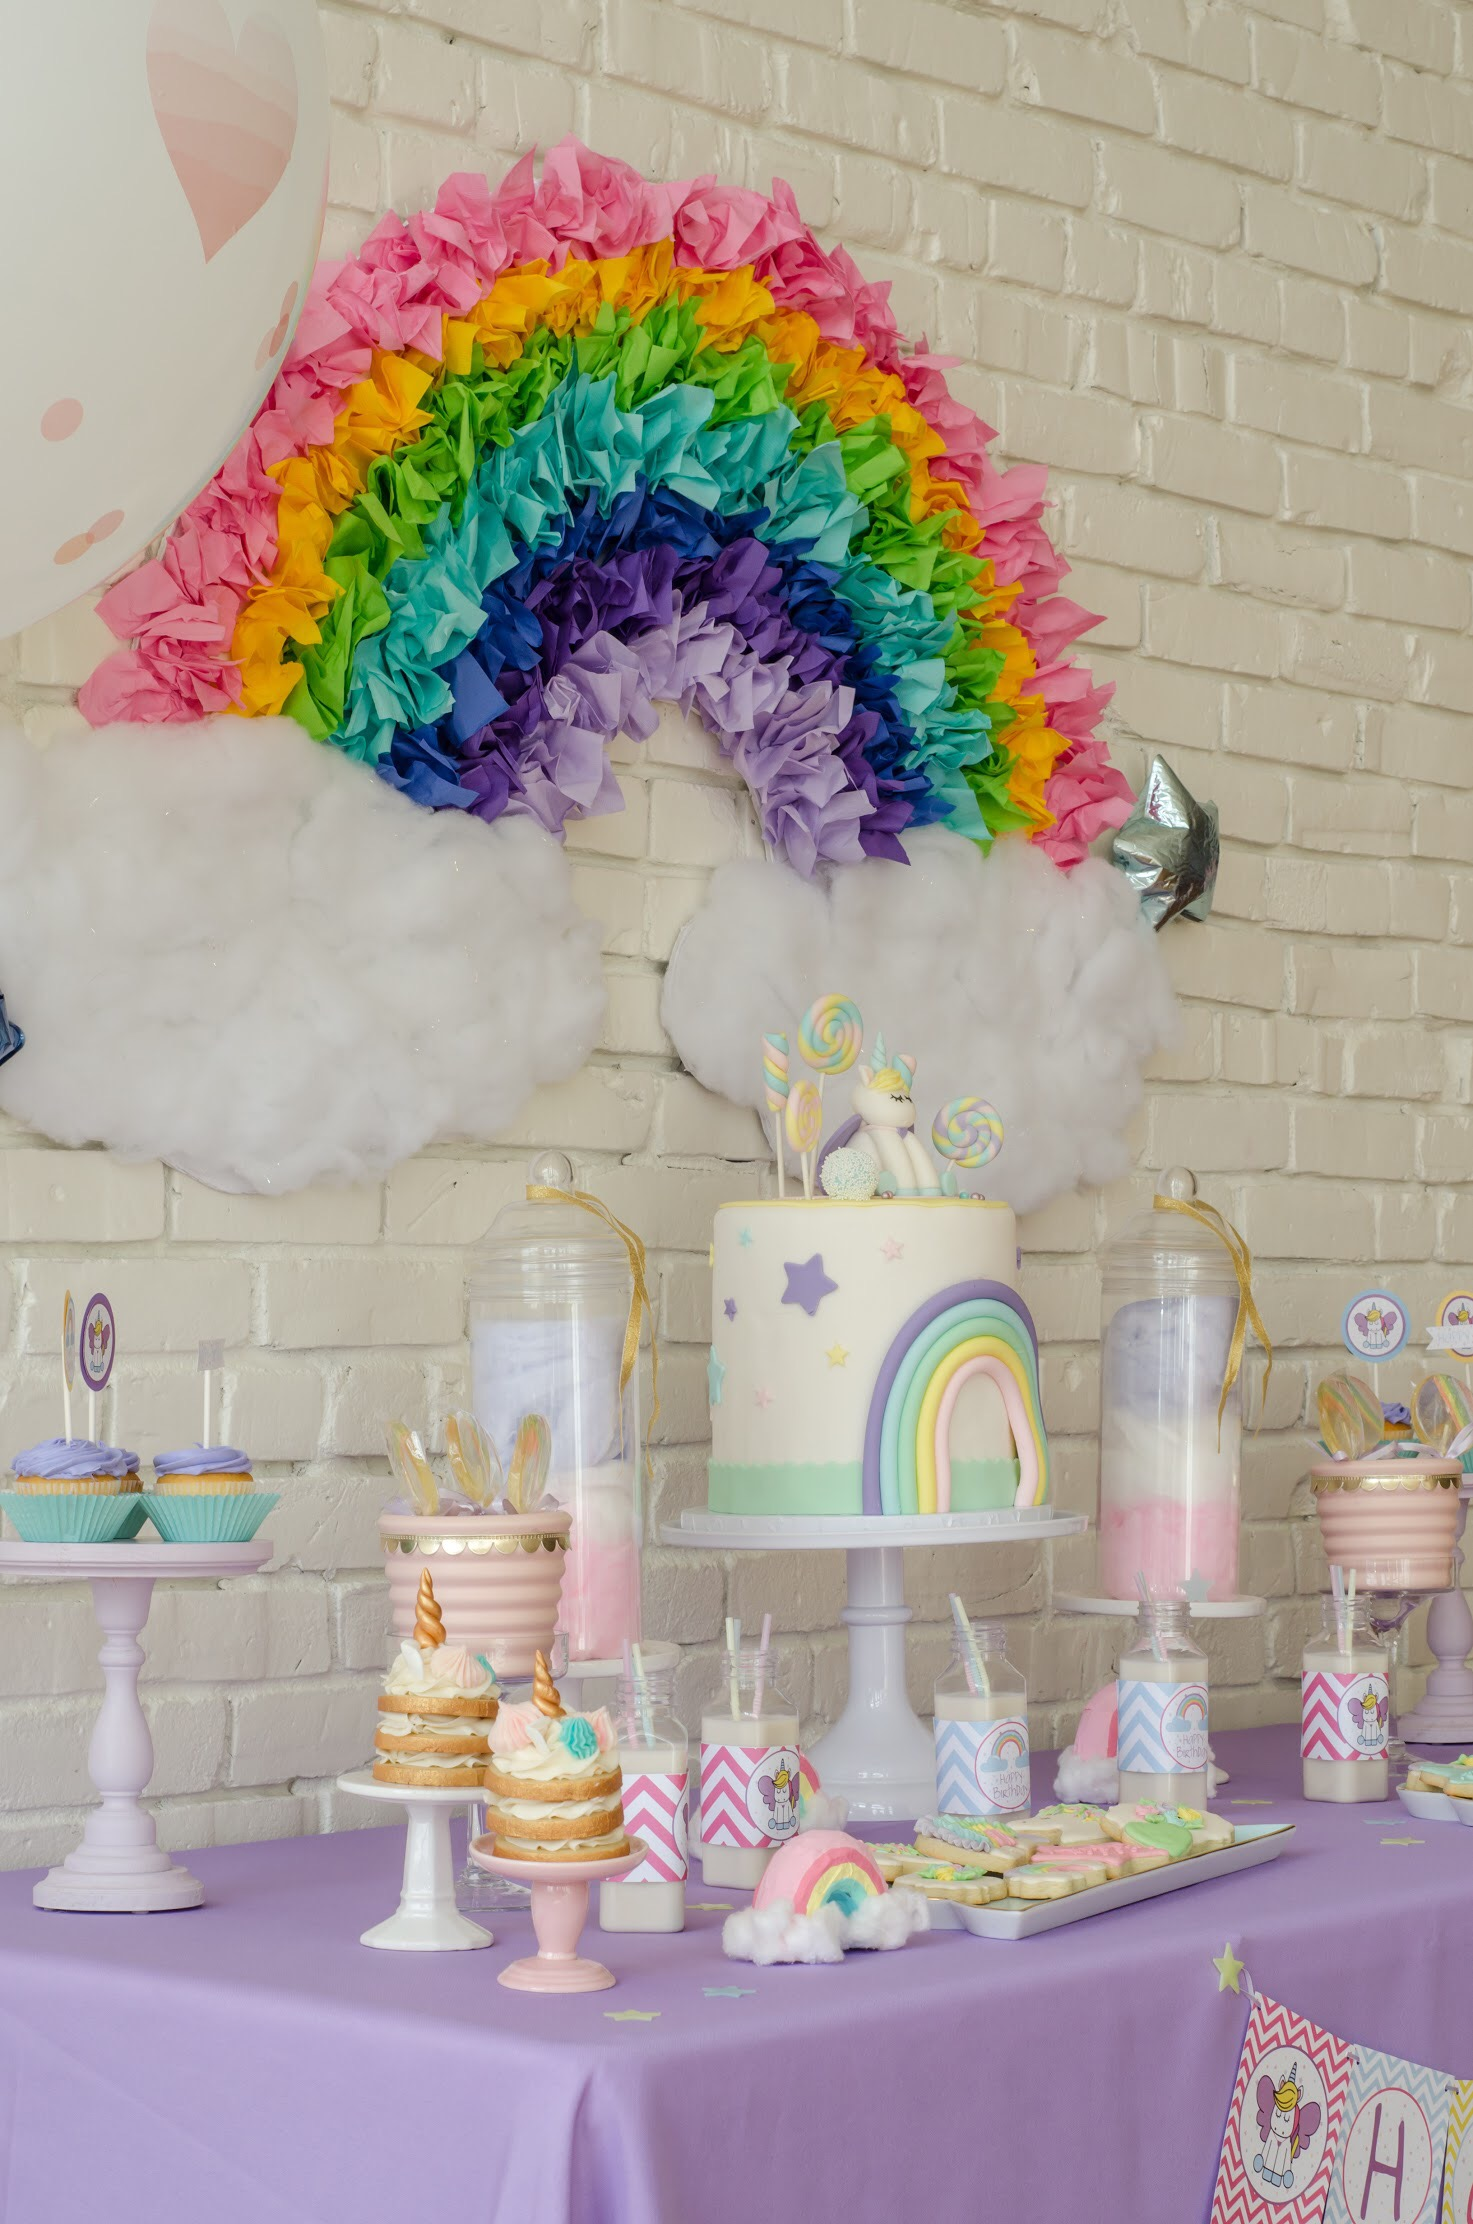 Unicorn themed birthday table created by Mint Event Design www.minteventdesign.com #unicornparty #unicorncake #birthdayparty #birthdaypartyideas #birthdaydesserts #birthdaycake #desserttable